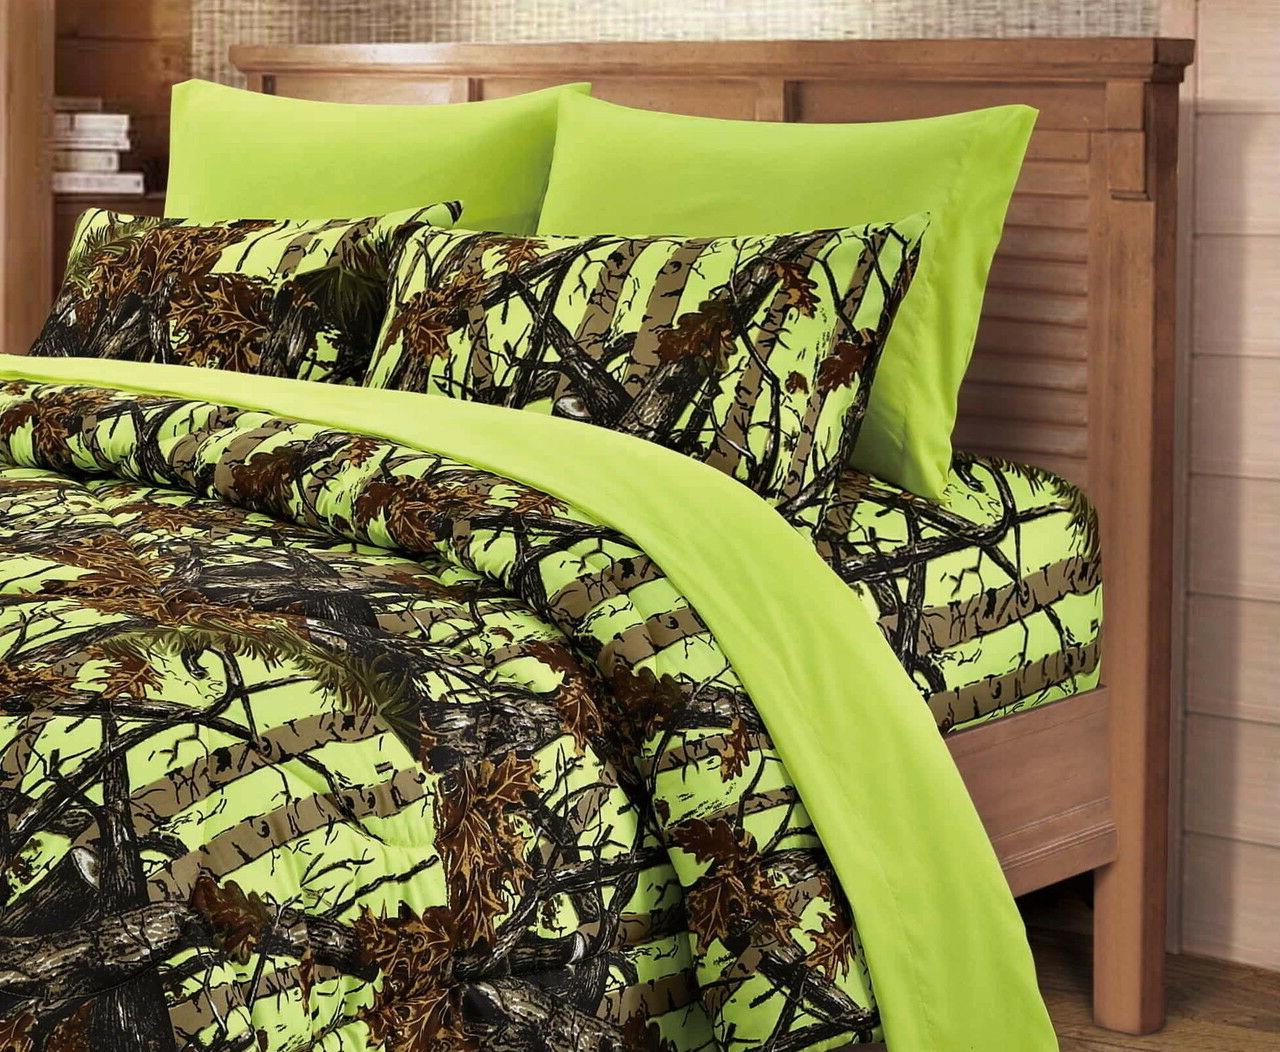 7 Woods Camo Comforter sheets/pillowcases